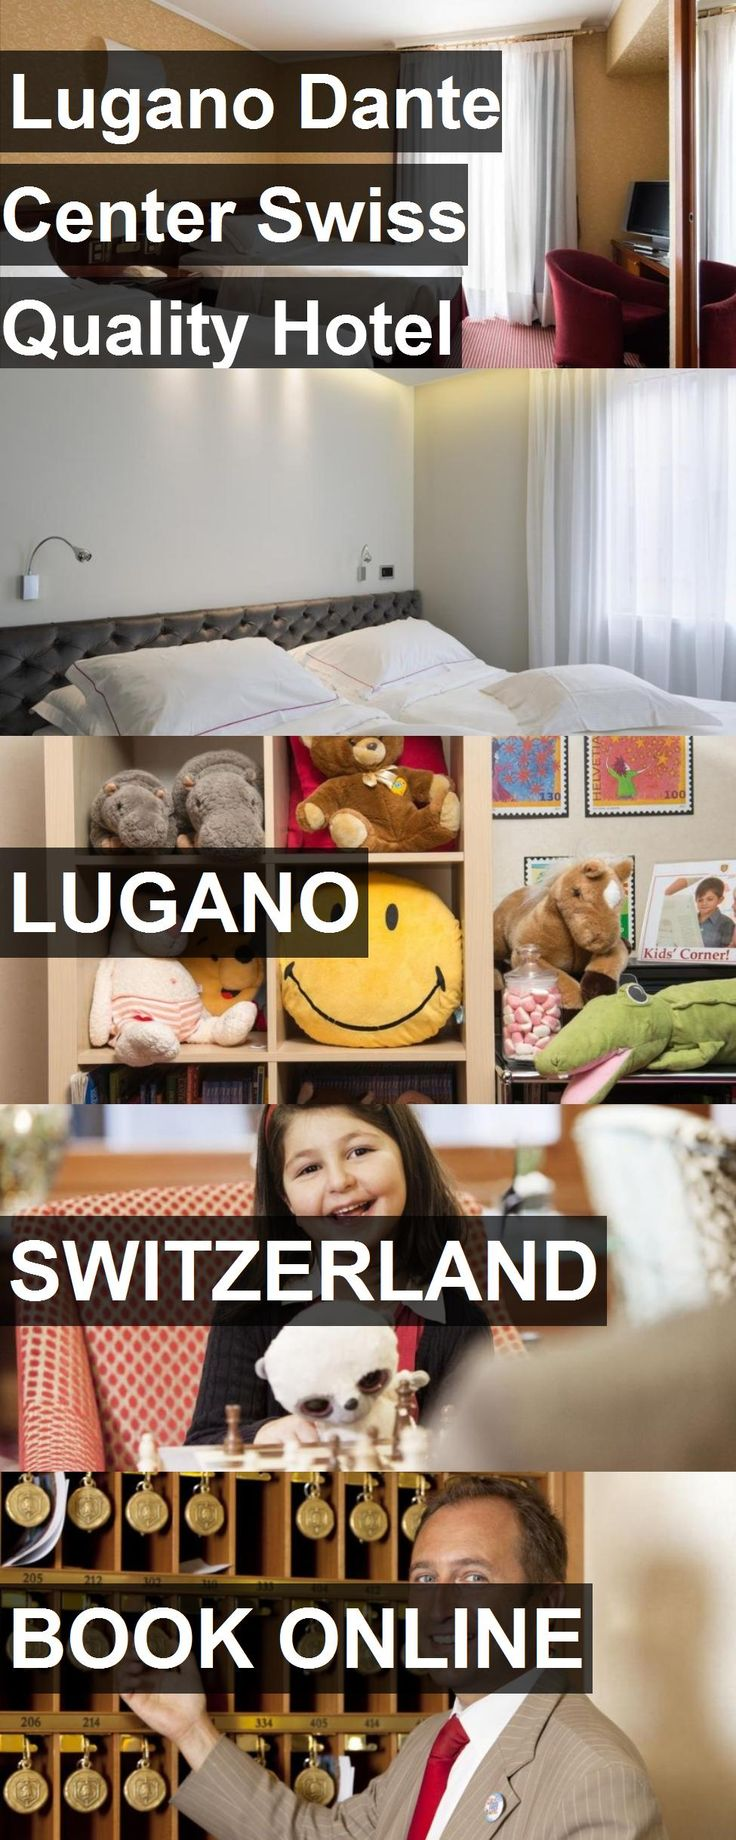 Hotel Lugano Dante Center Swiss Quality Hotel in Lugano, Switzerland. For more information, photos, reviews and best prices please follow the link. #Switzerland #Lugano #LuganoDanteCenterSwissQualityHotel #hotel #travel #vacation